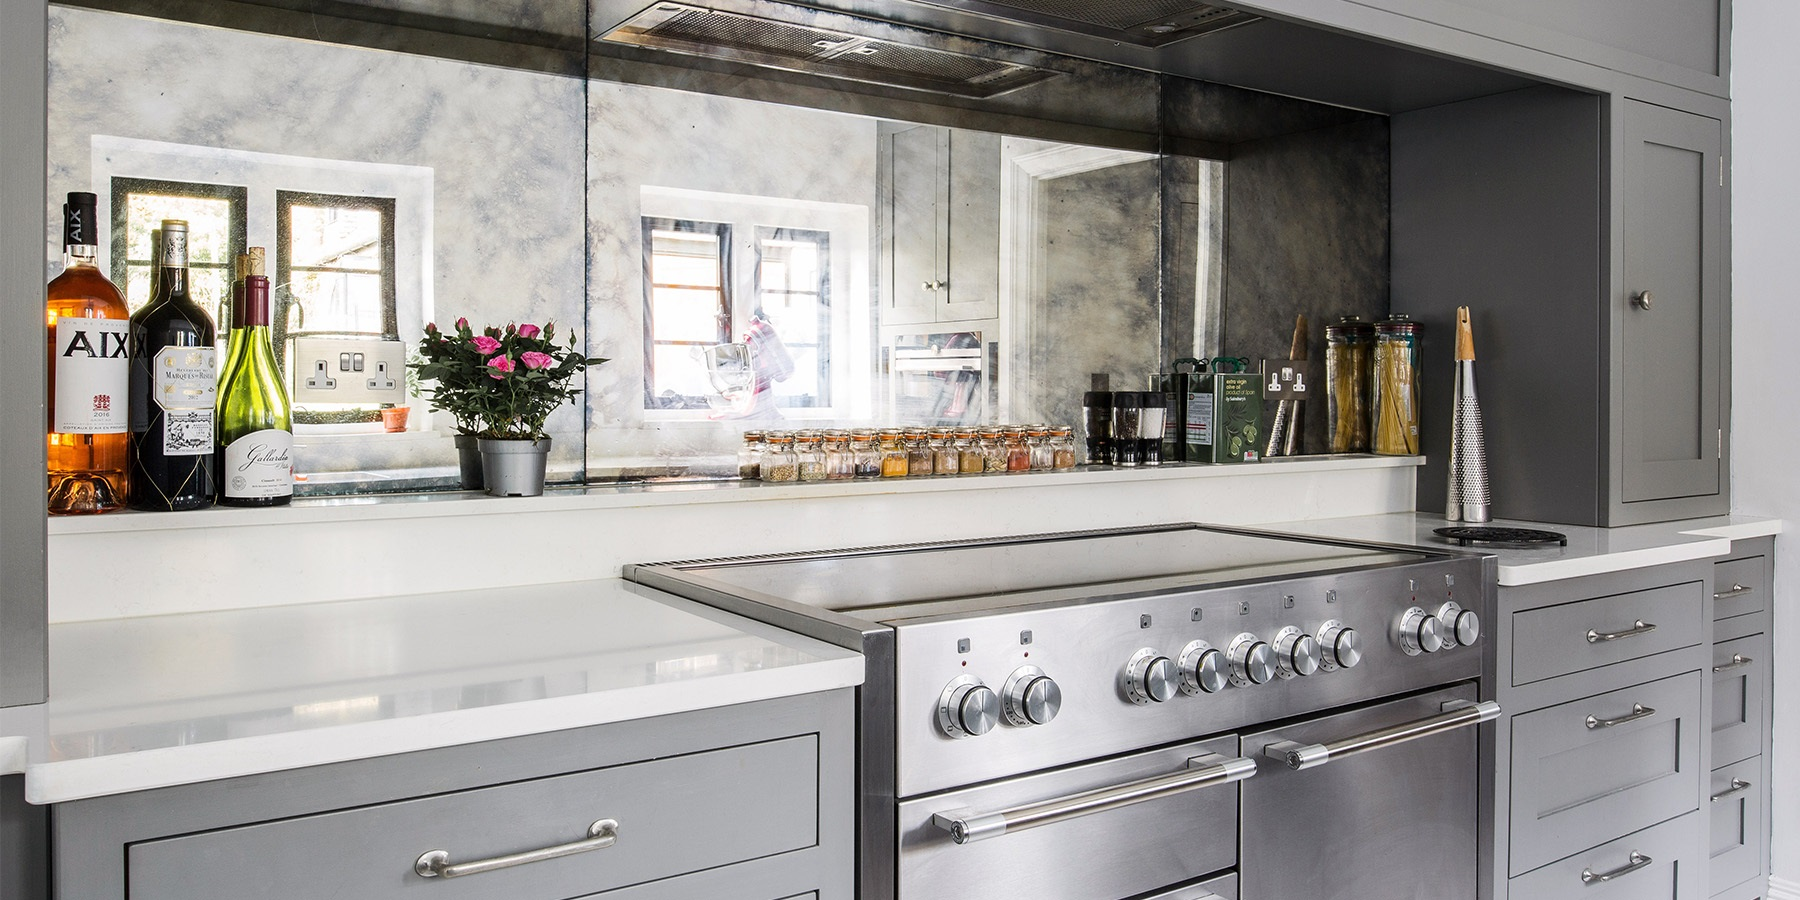 Luxury, Bespoke Kitchen - Burlanes handmade Hoyden oven surround with mirrored splashback tiles.